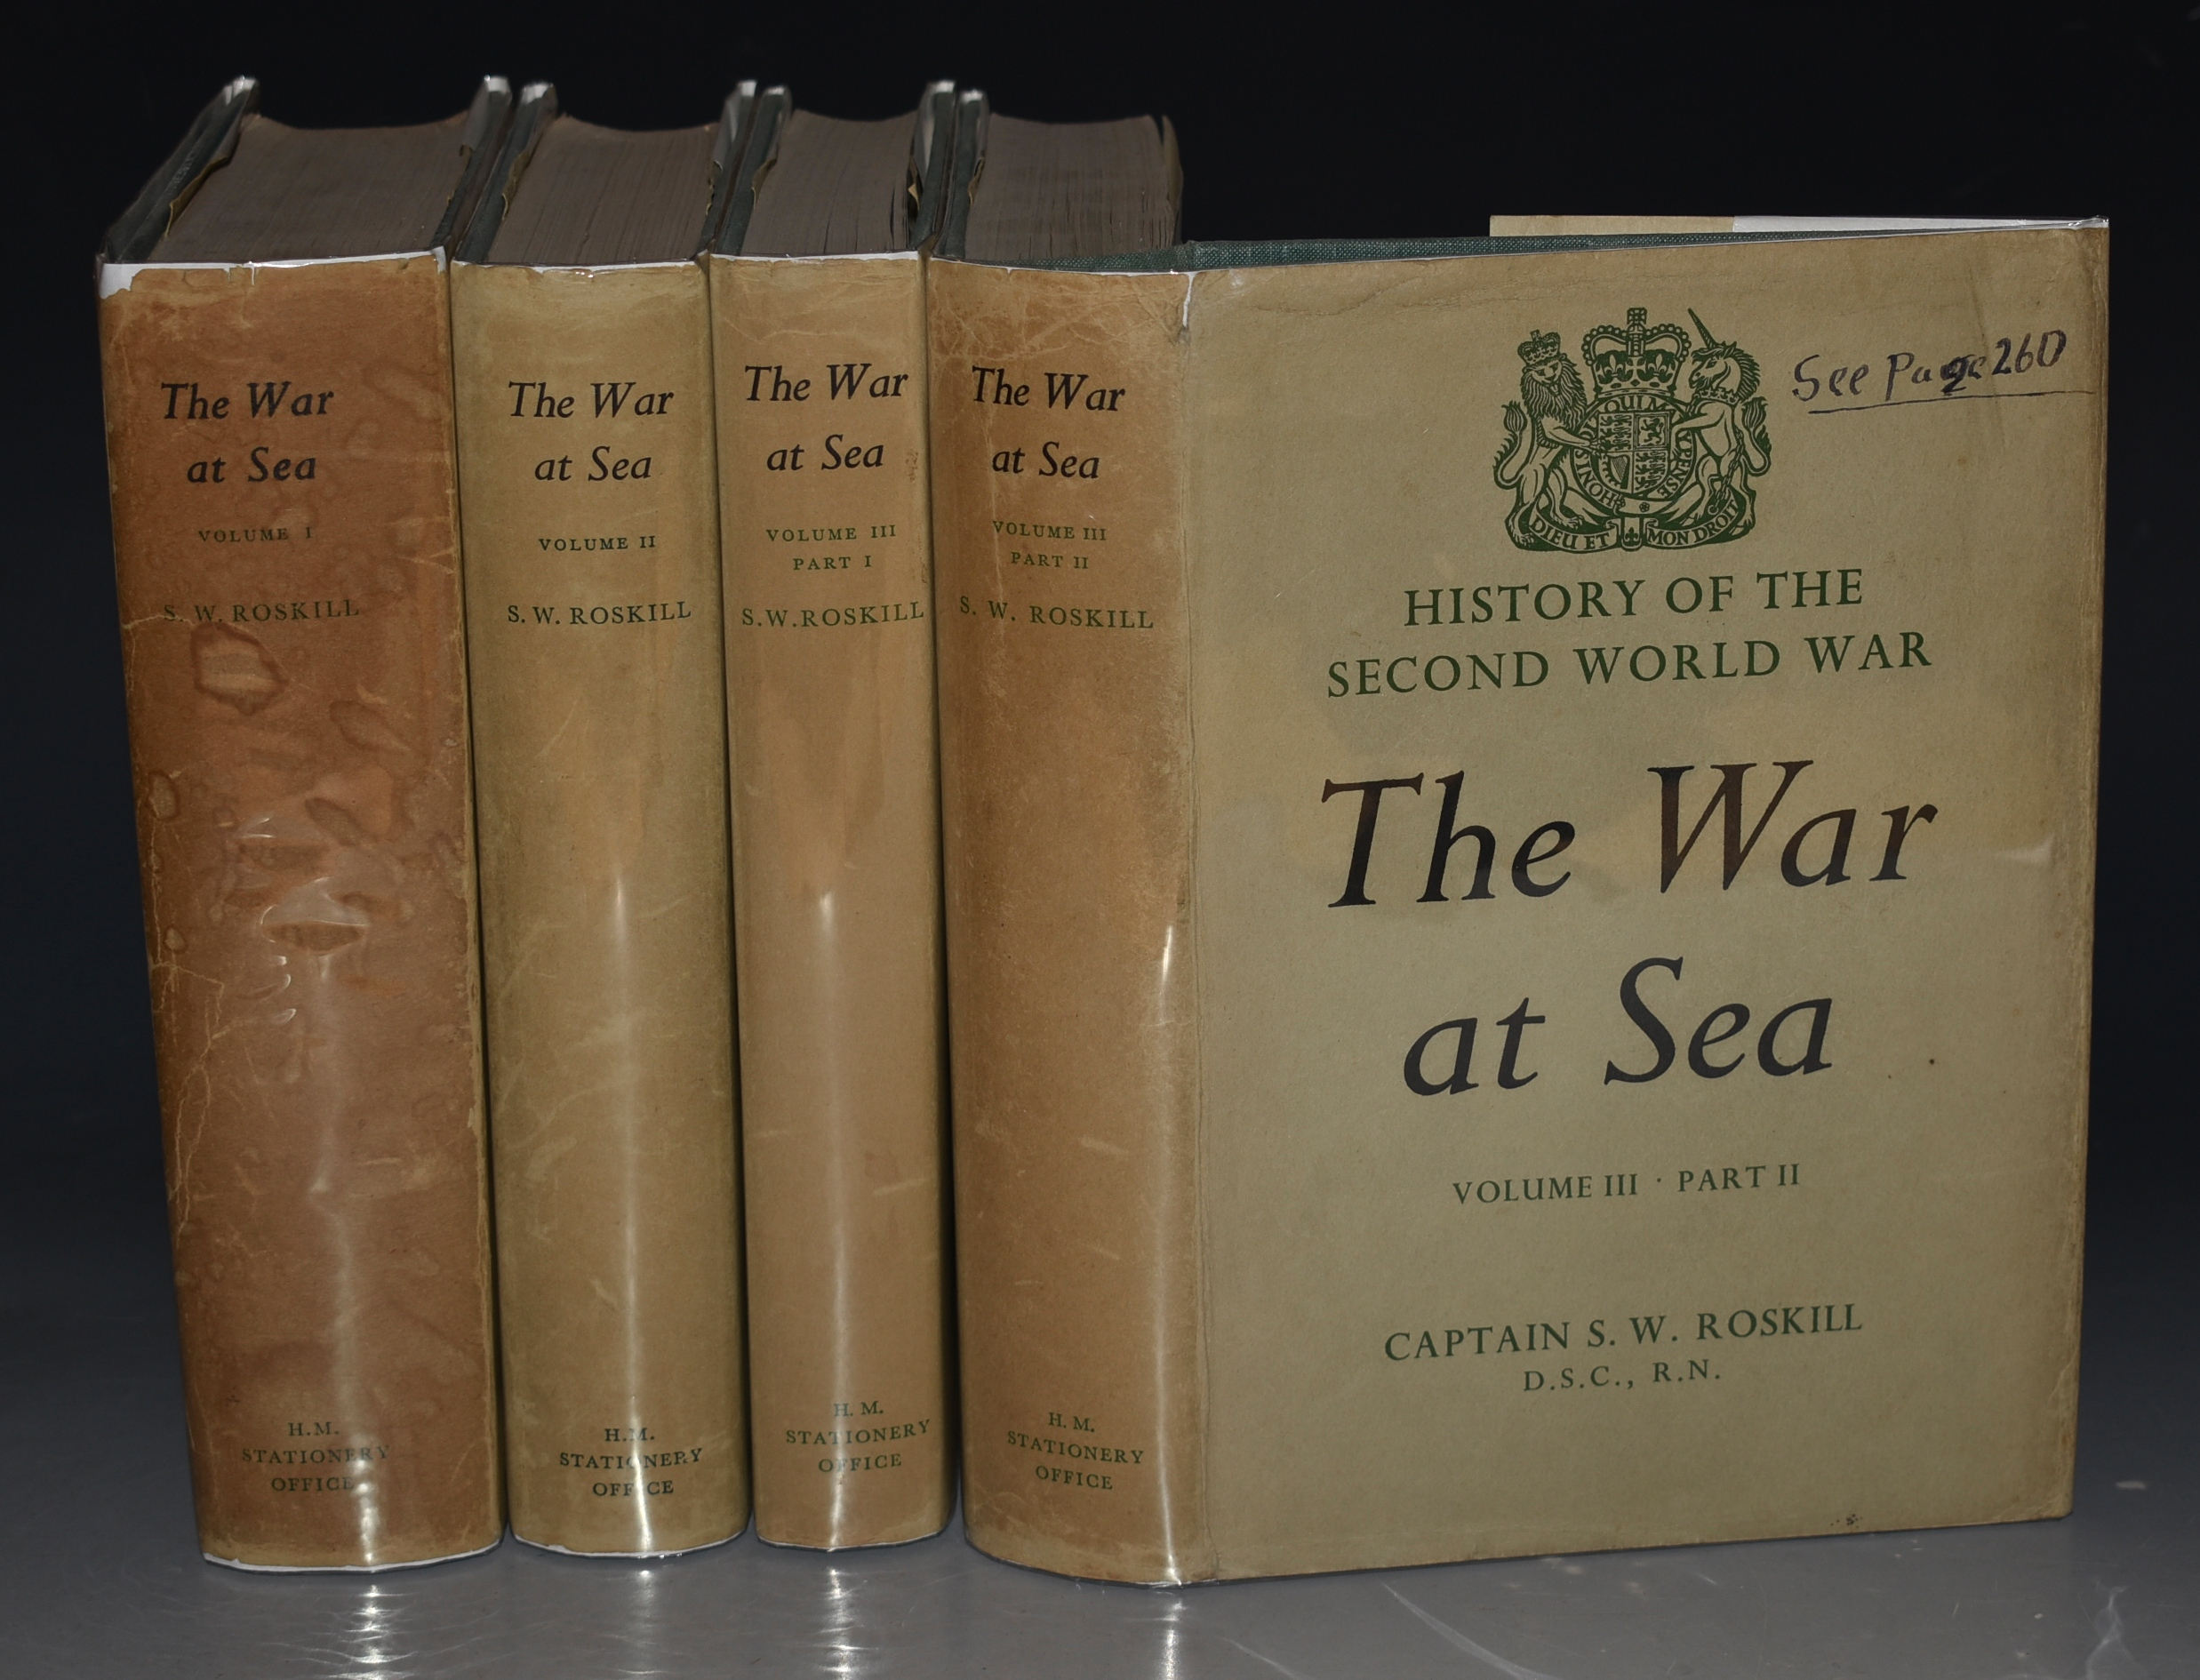 Image for The War at Sea. 1939-1945. Three Volumes bound in Four Parts. History of the Second World War. United Kingdom Military Series. Edited by J. R. M. Butler. WITH SIGNED LETTERS.